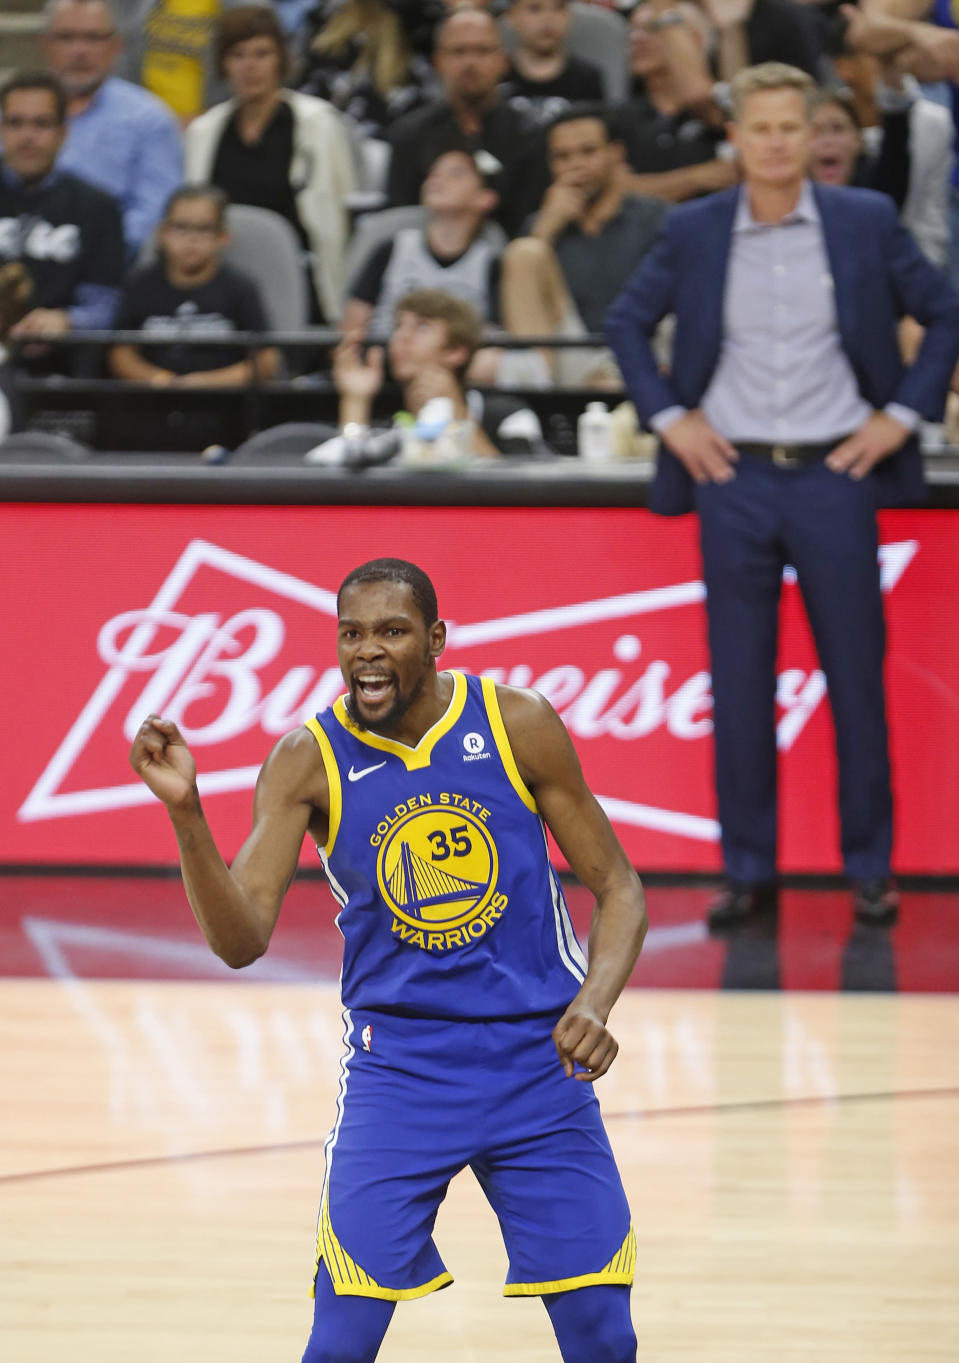 SAN ANTONIO,TX - APRIL 19: Kevin Durant #35 of the Golden State Warriors reacts after a Klay Thompson #11 of the Golden State Warriors basket against the San Antonio Spurs at AT&T Center on April 19 , 2018 in San Antonio, Texas. (Photo by Ronald Cortes/Getty Images)